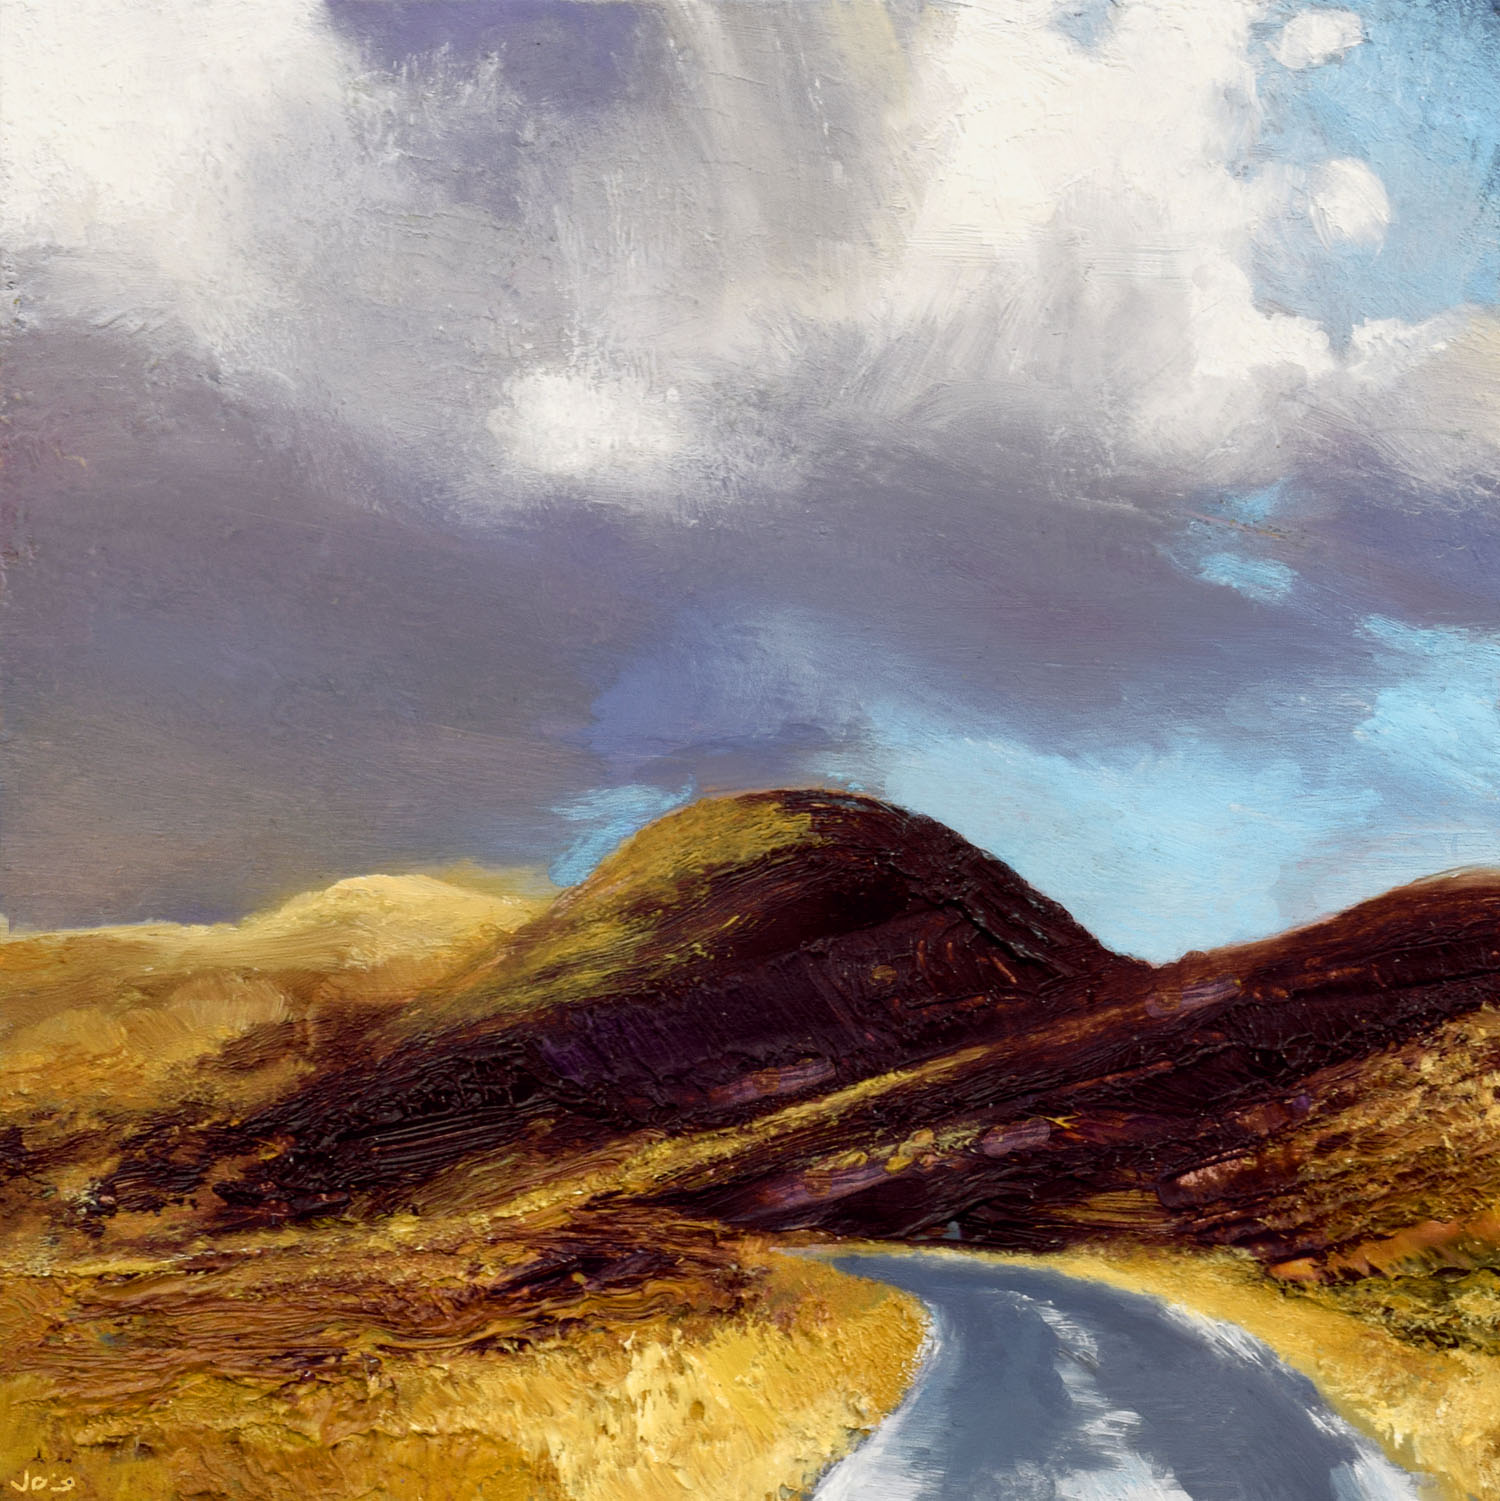 The Bog Road, John O'Grady | A landscape painting in oil of a road crossing bogland in the West of Ireland